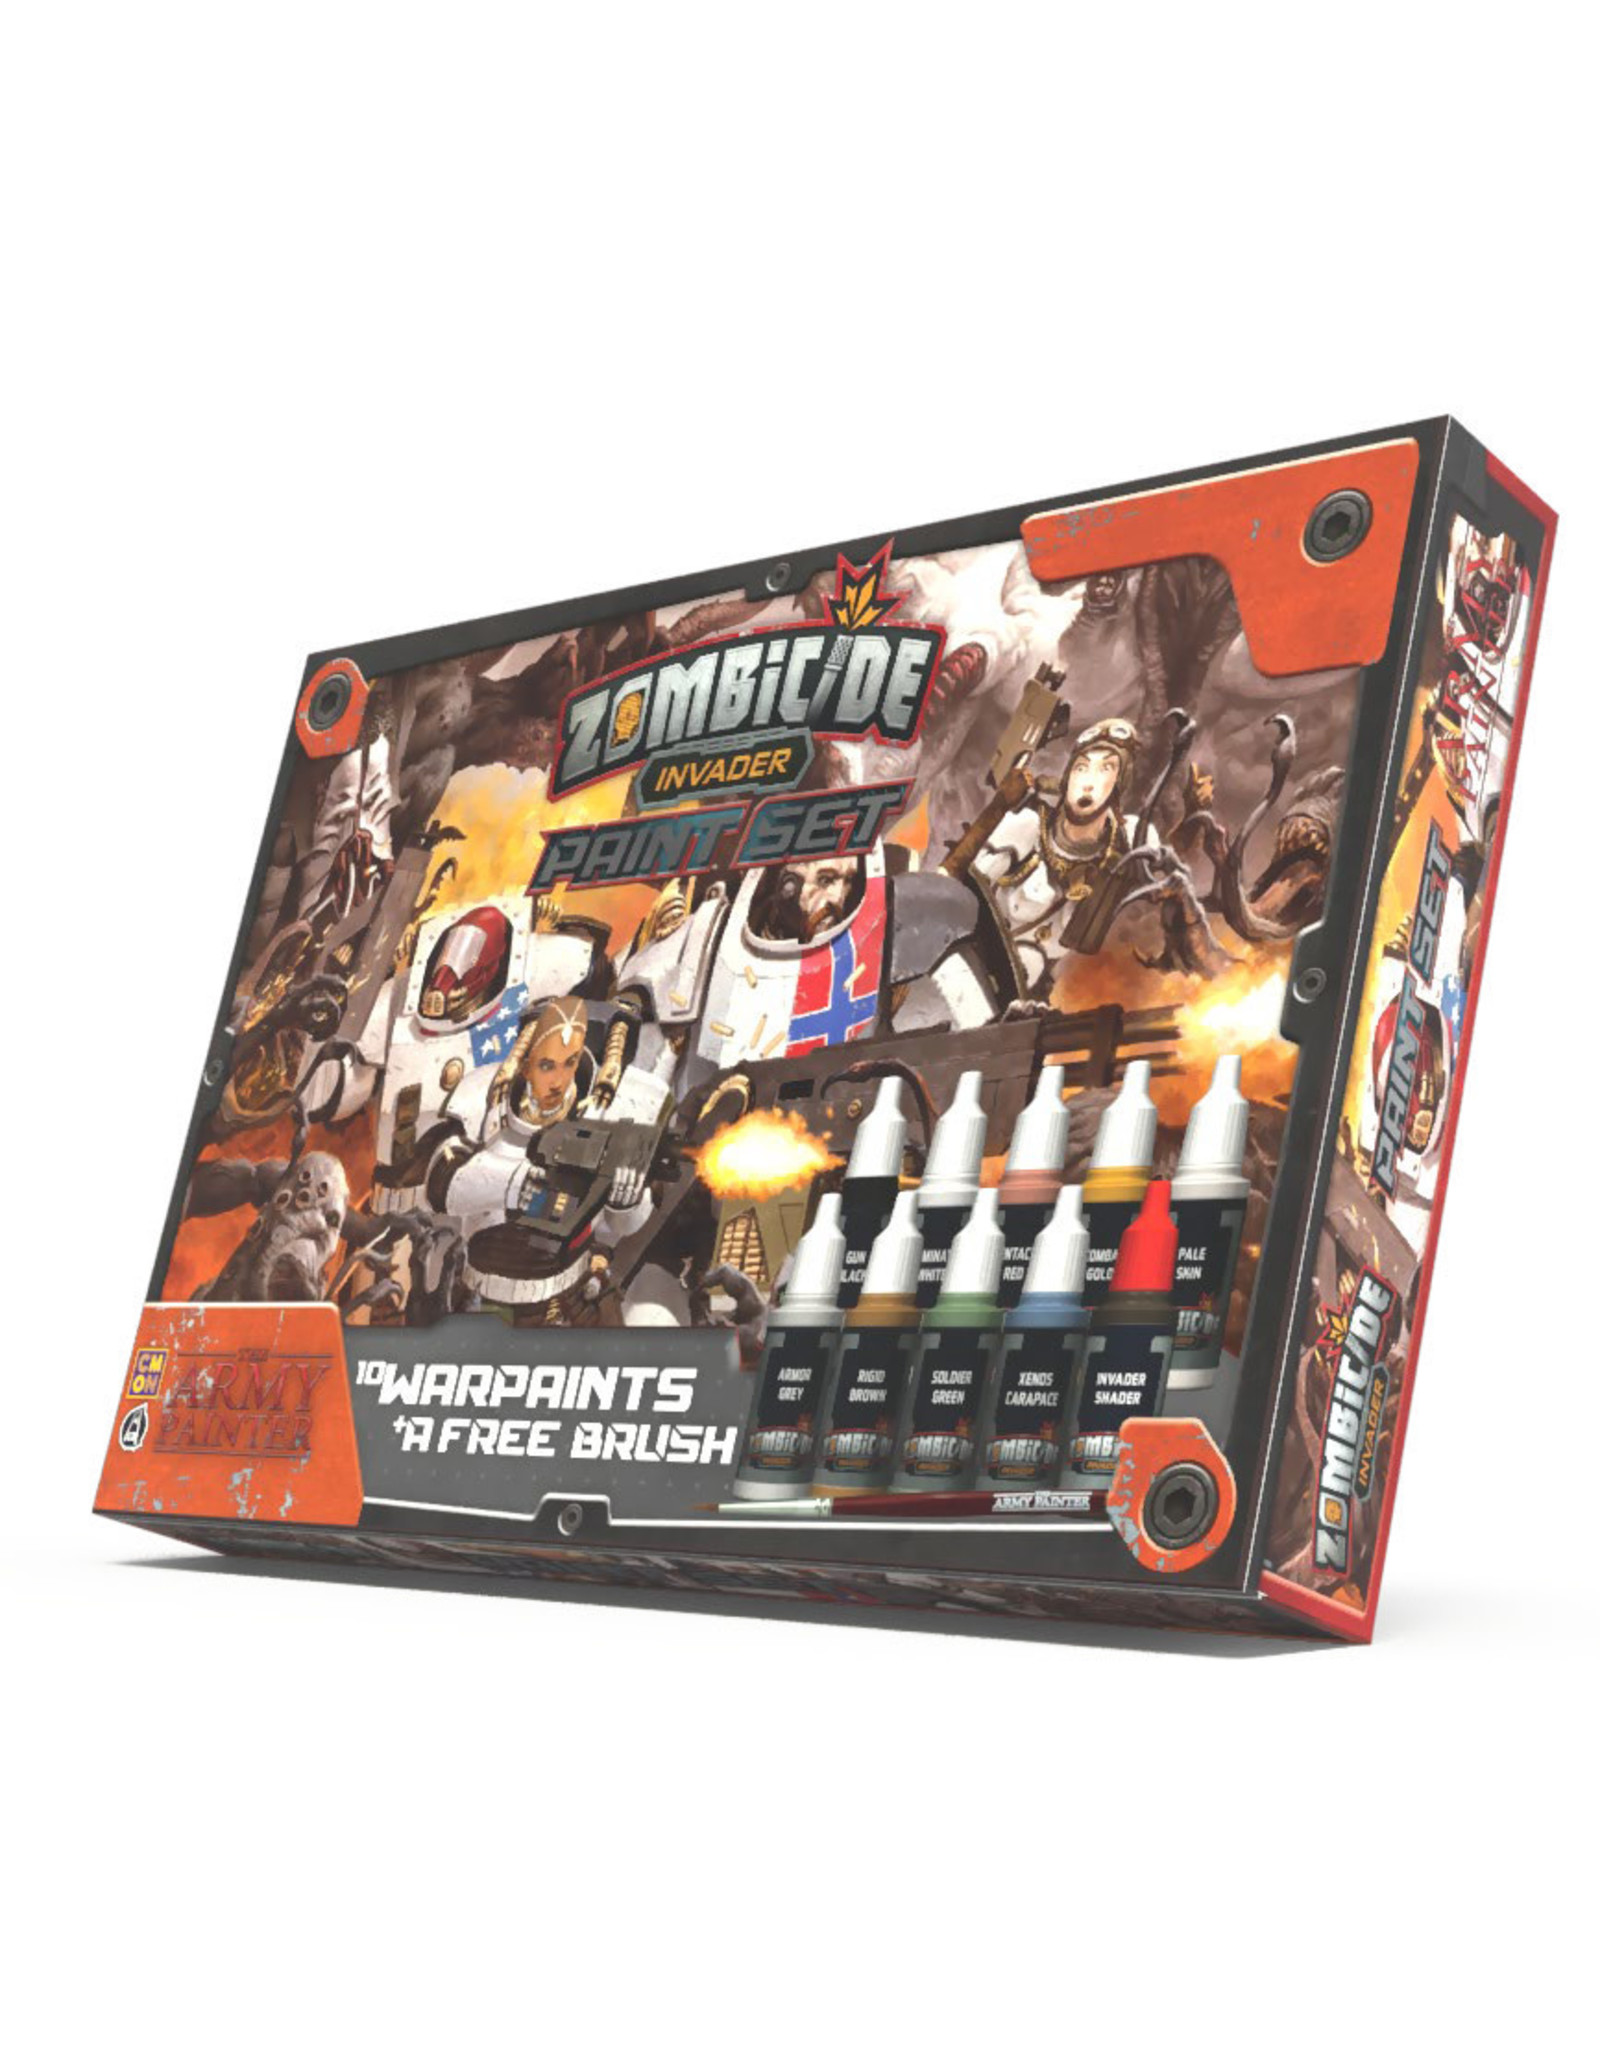 Cool Mini or Not Zombicide: Invader